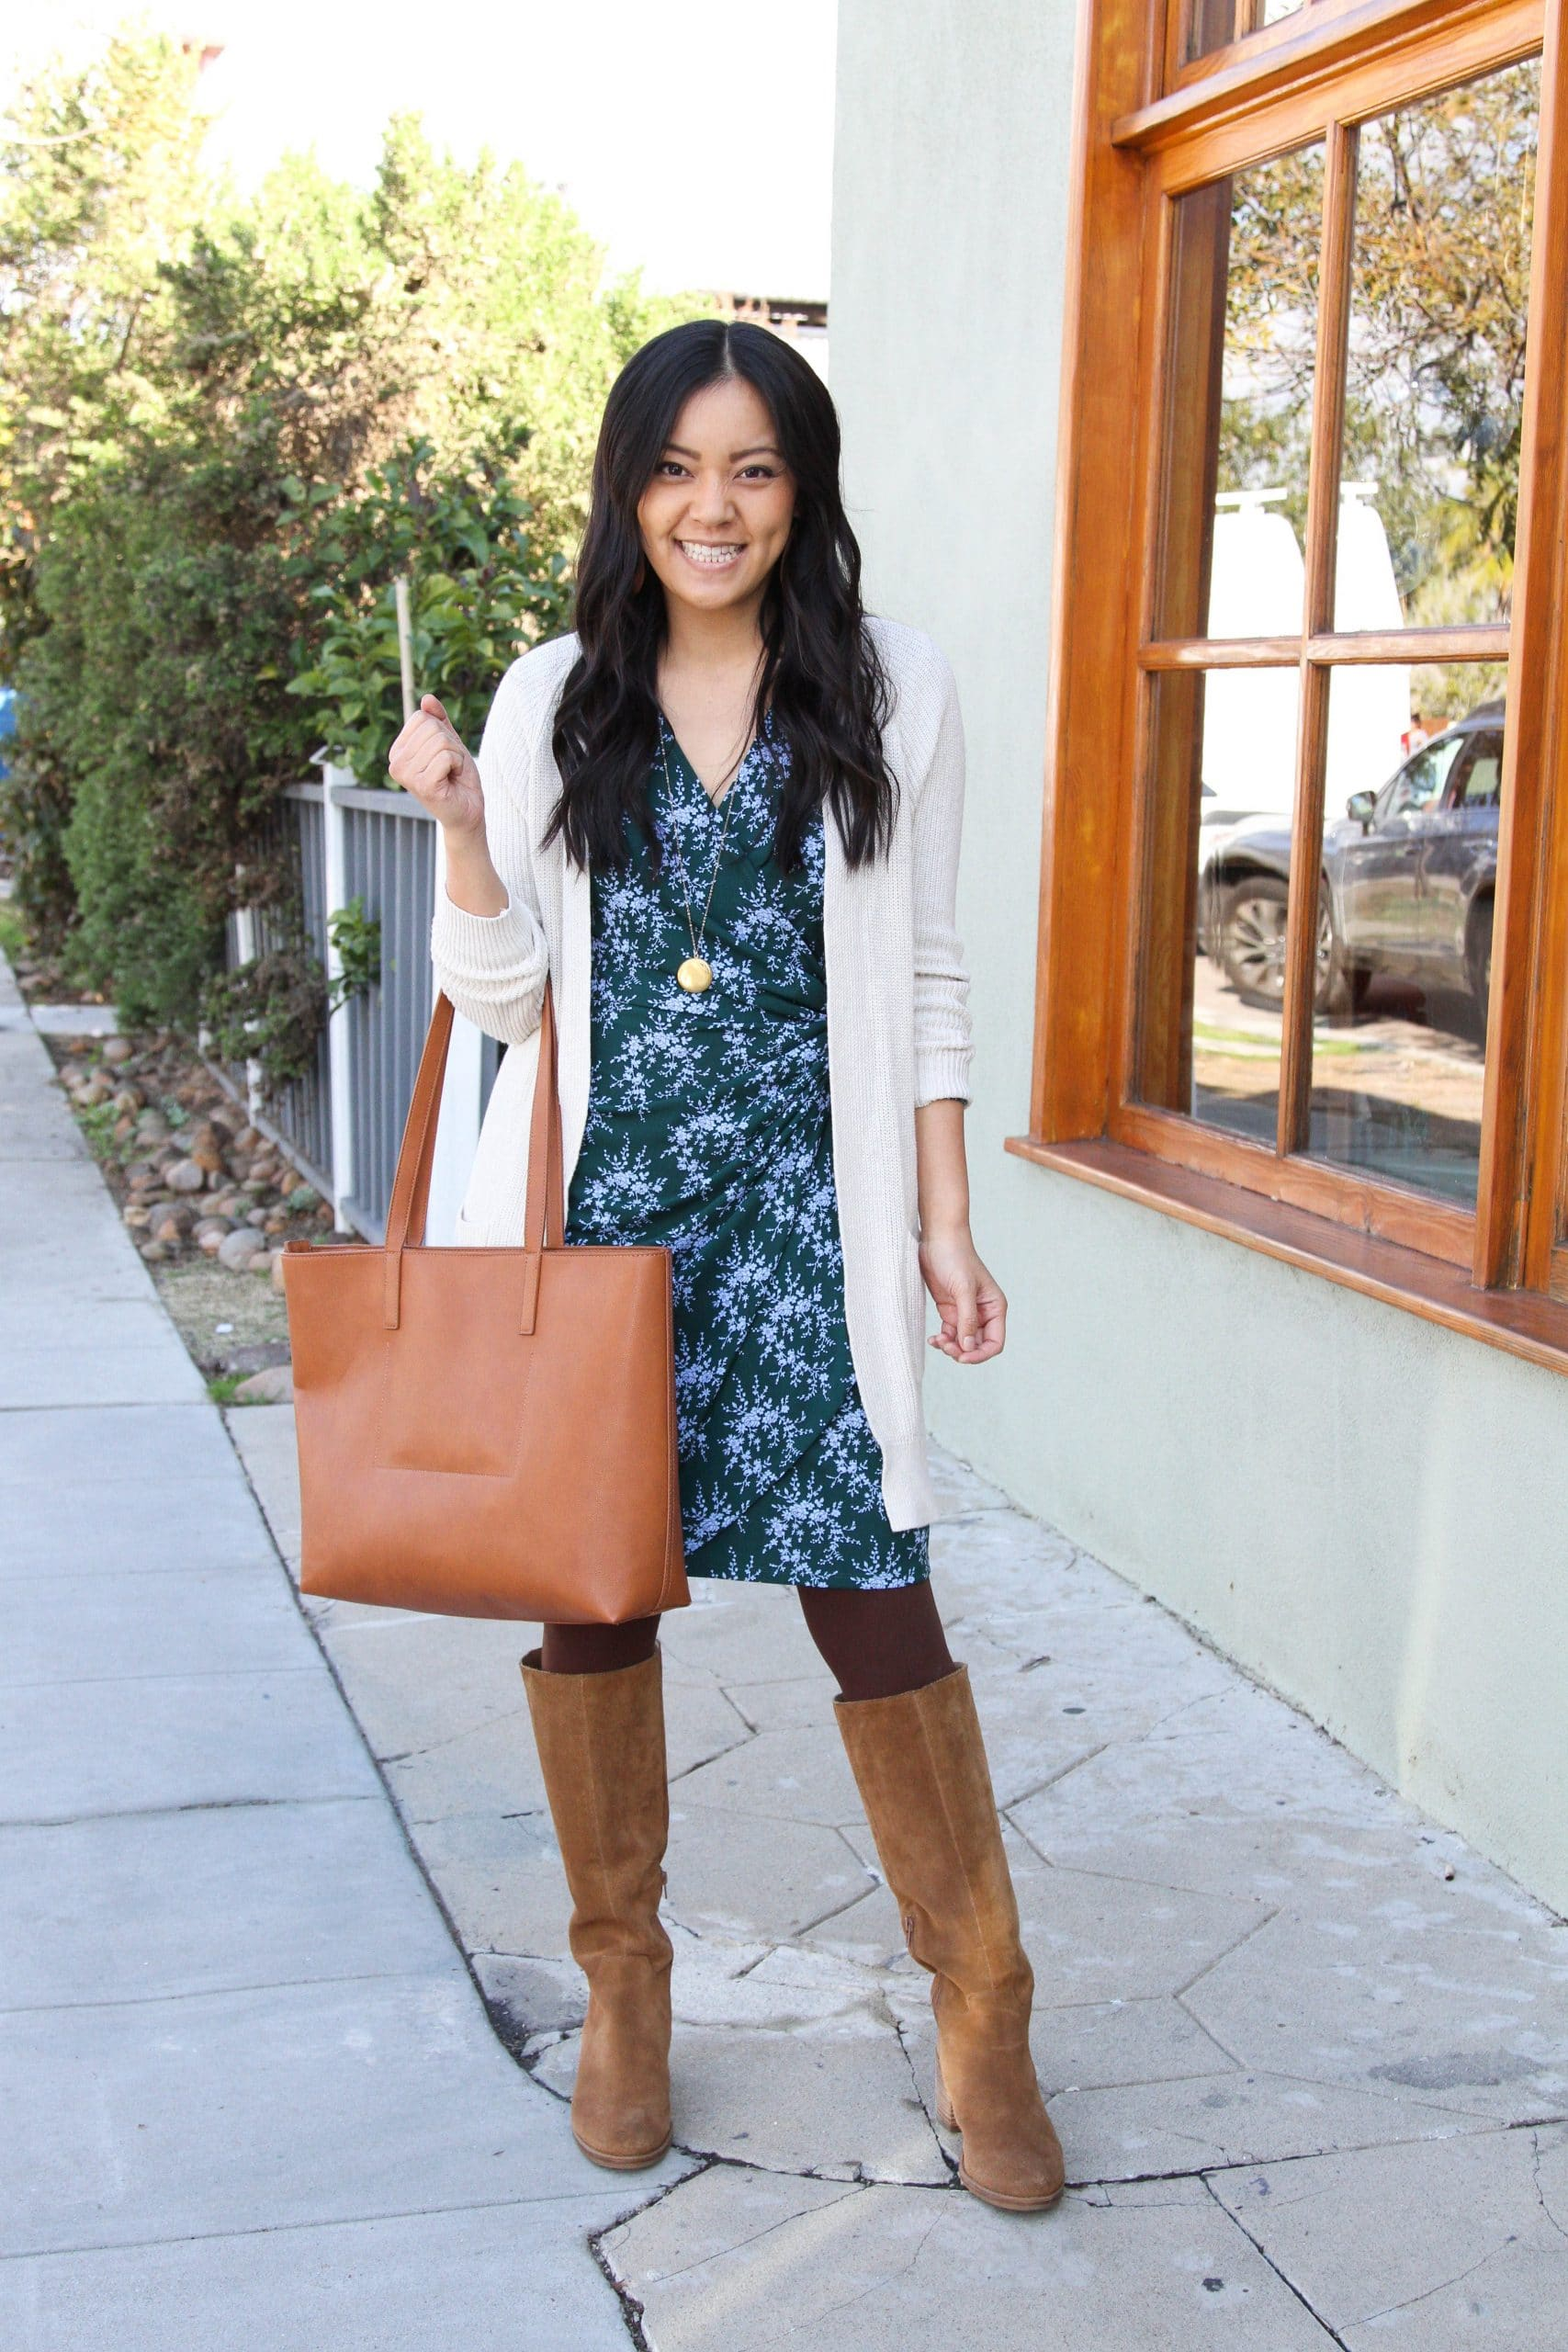 Winter Business Casual Dress Outfit: blue and green wrap dress + cream long cardigan + brown tights + cognac suede boots + cognac tote + gold pendant necklace